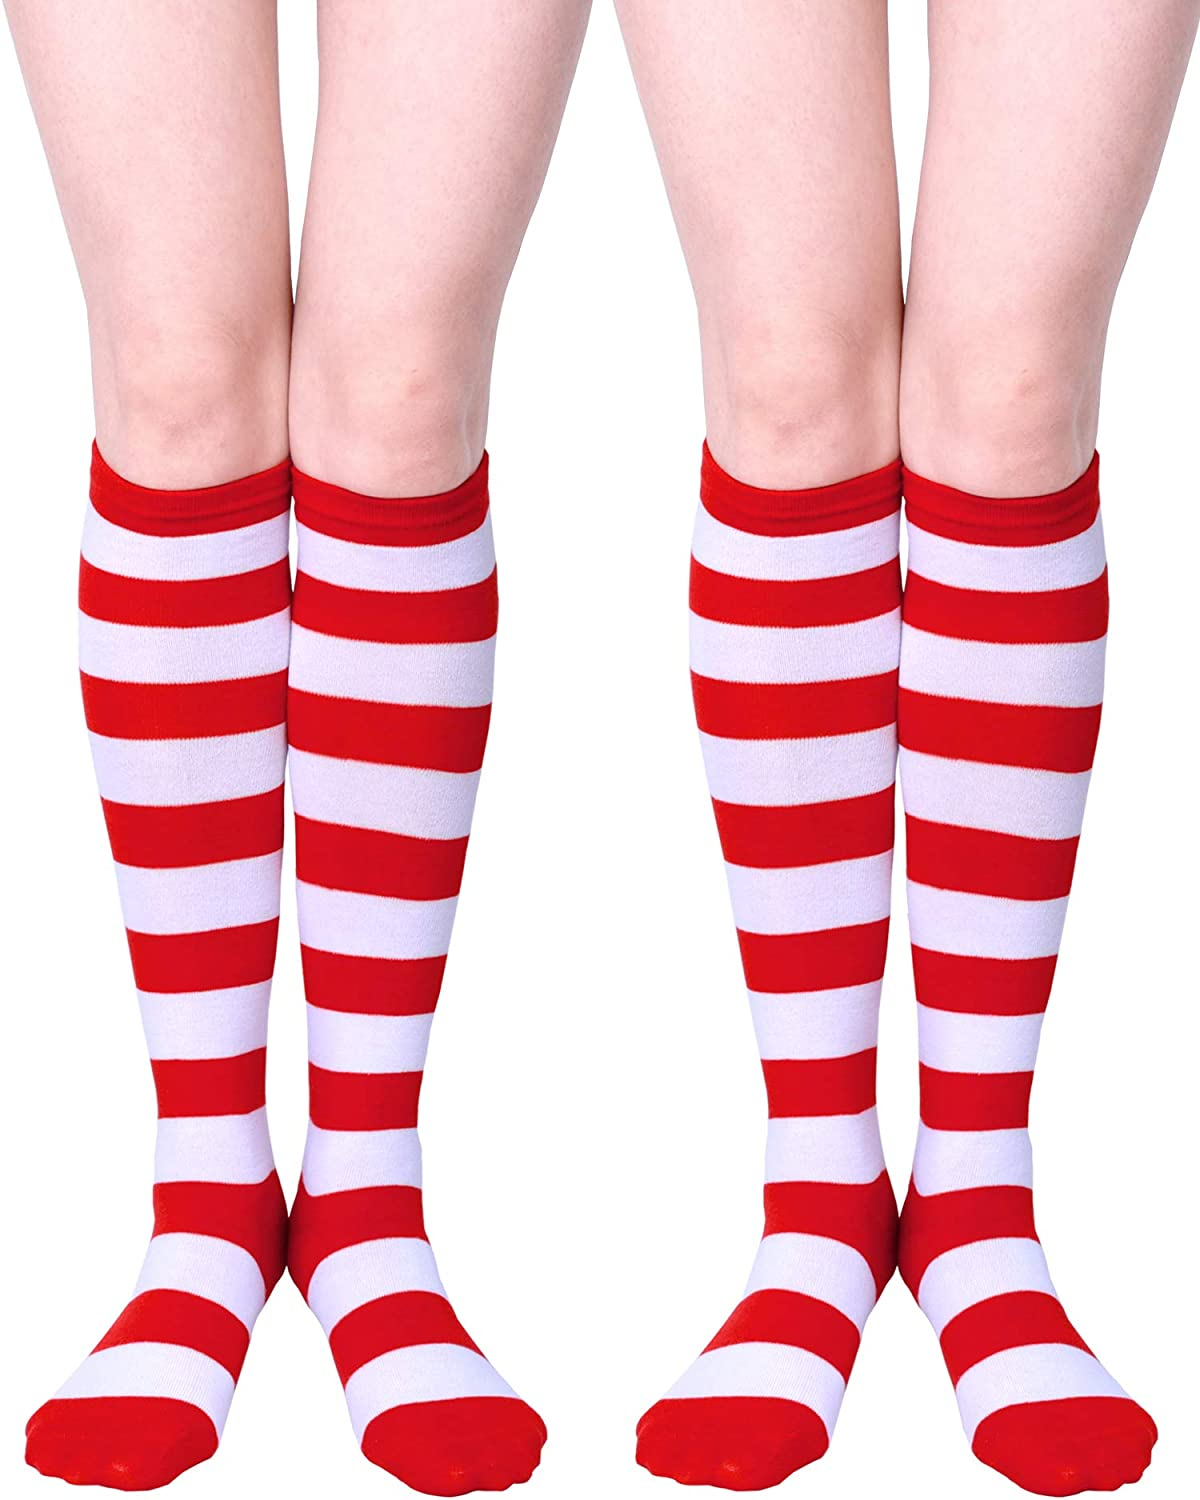 URATOT Halloween Striped Knee High Socks Halloween Cosplay Costume Red and White Stripe Stockings for Child and Adult